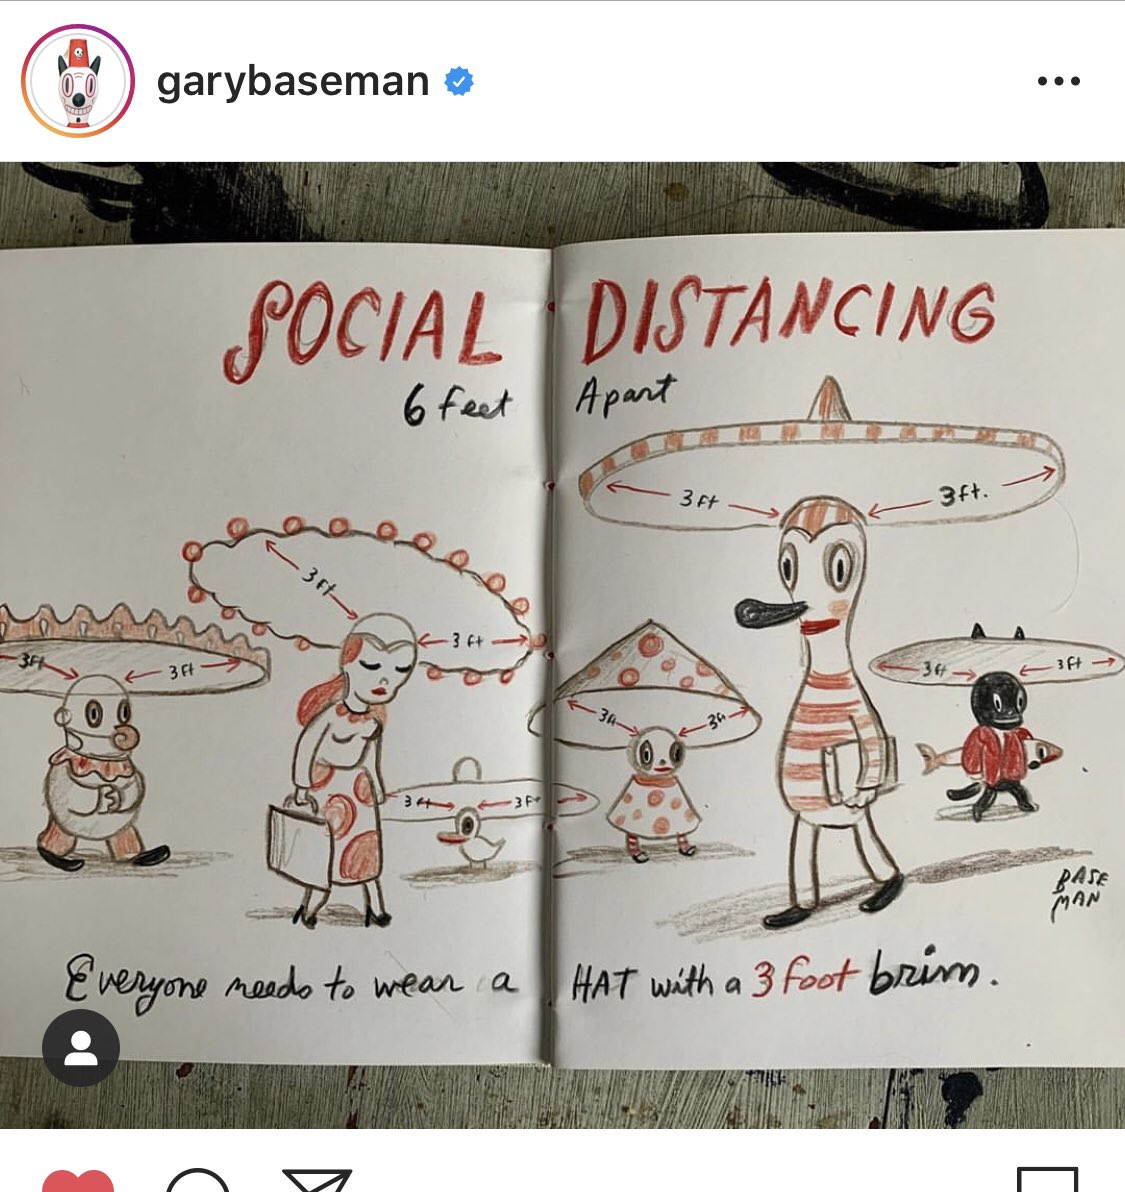 @nhassenfeld Gary Baseman has some pretty great (non song-related) social distancing art, too.